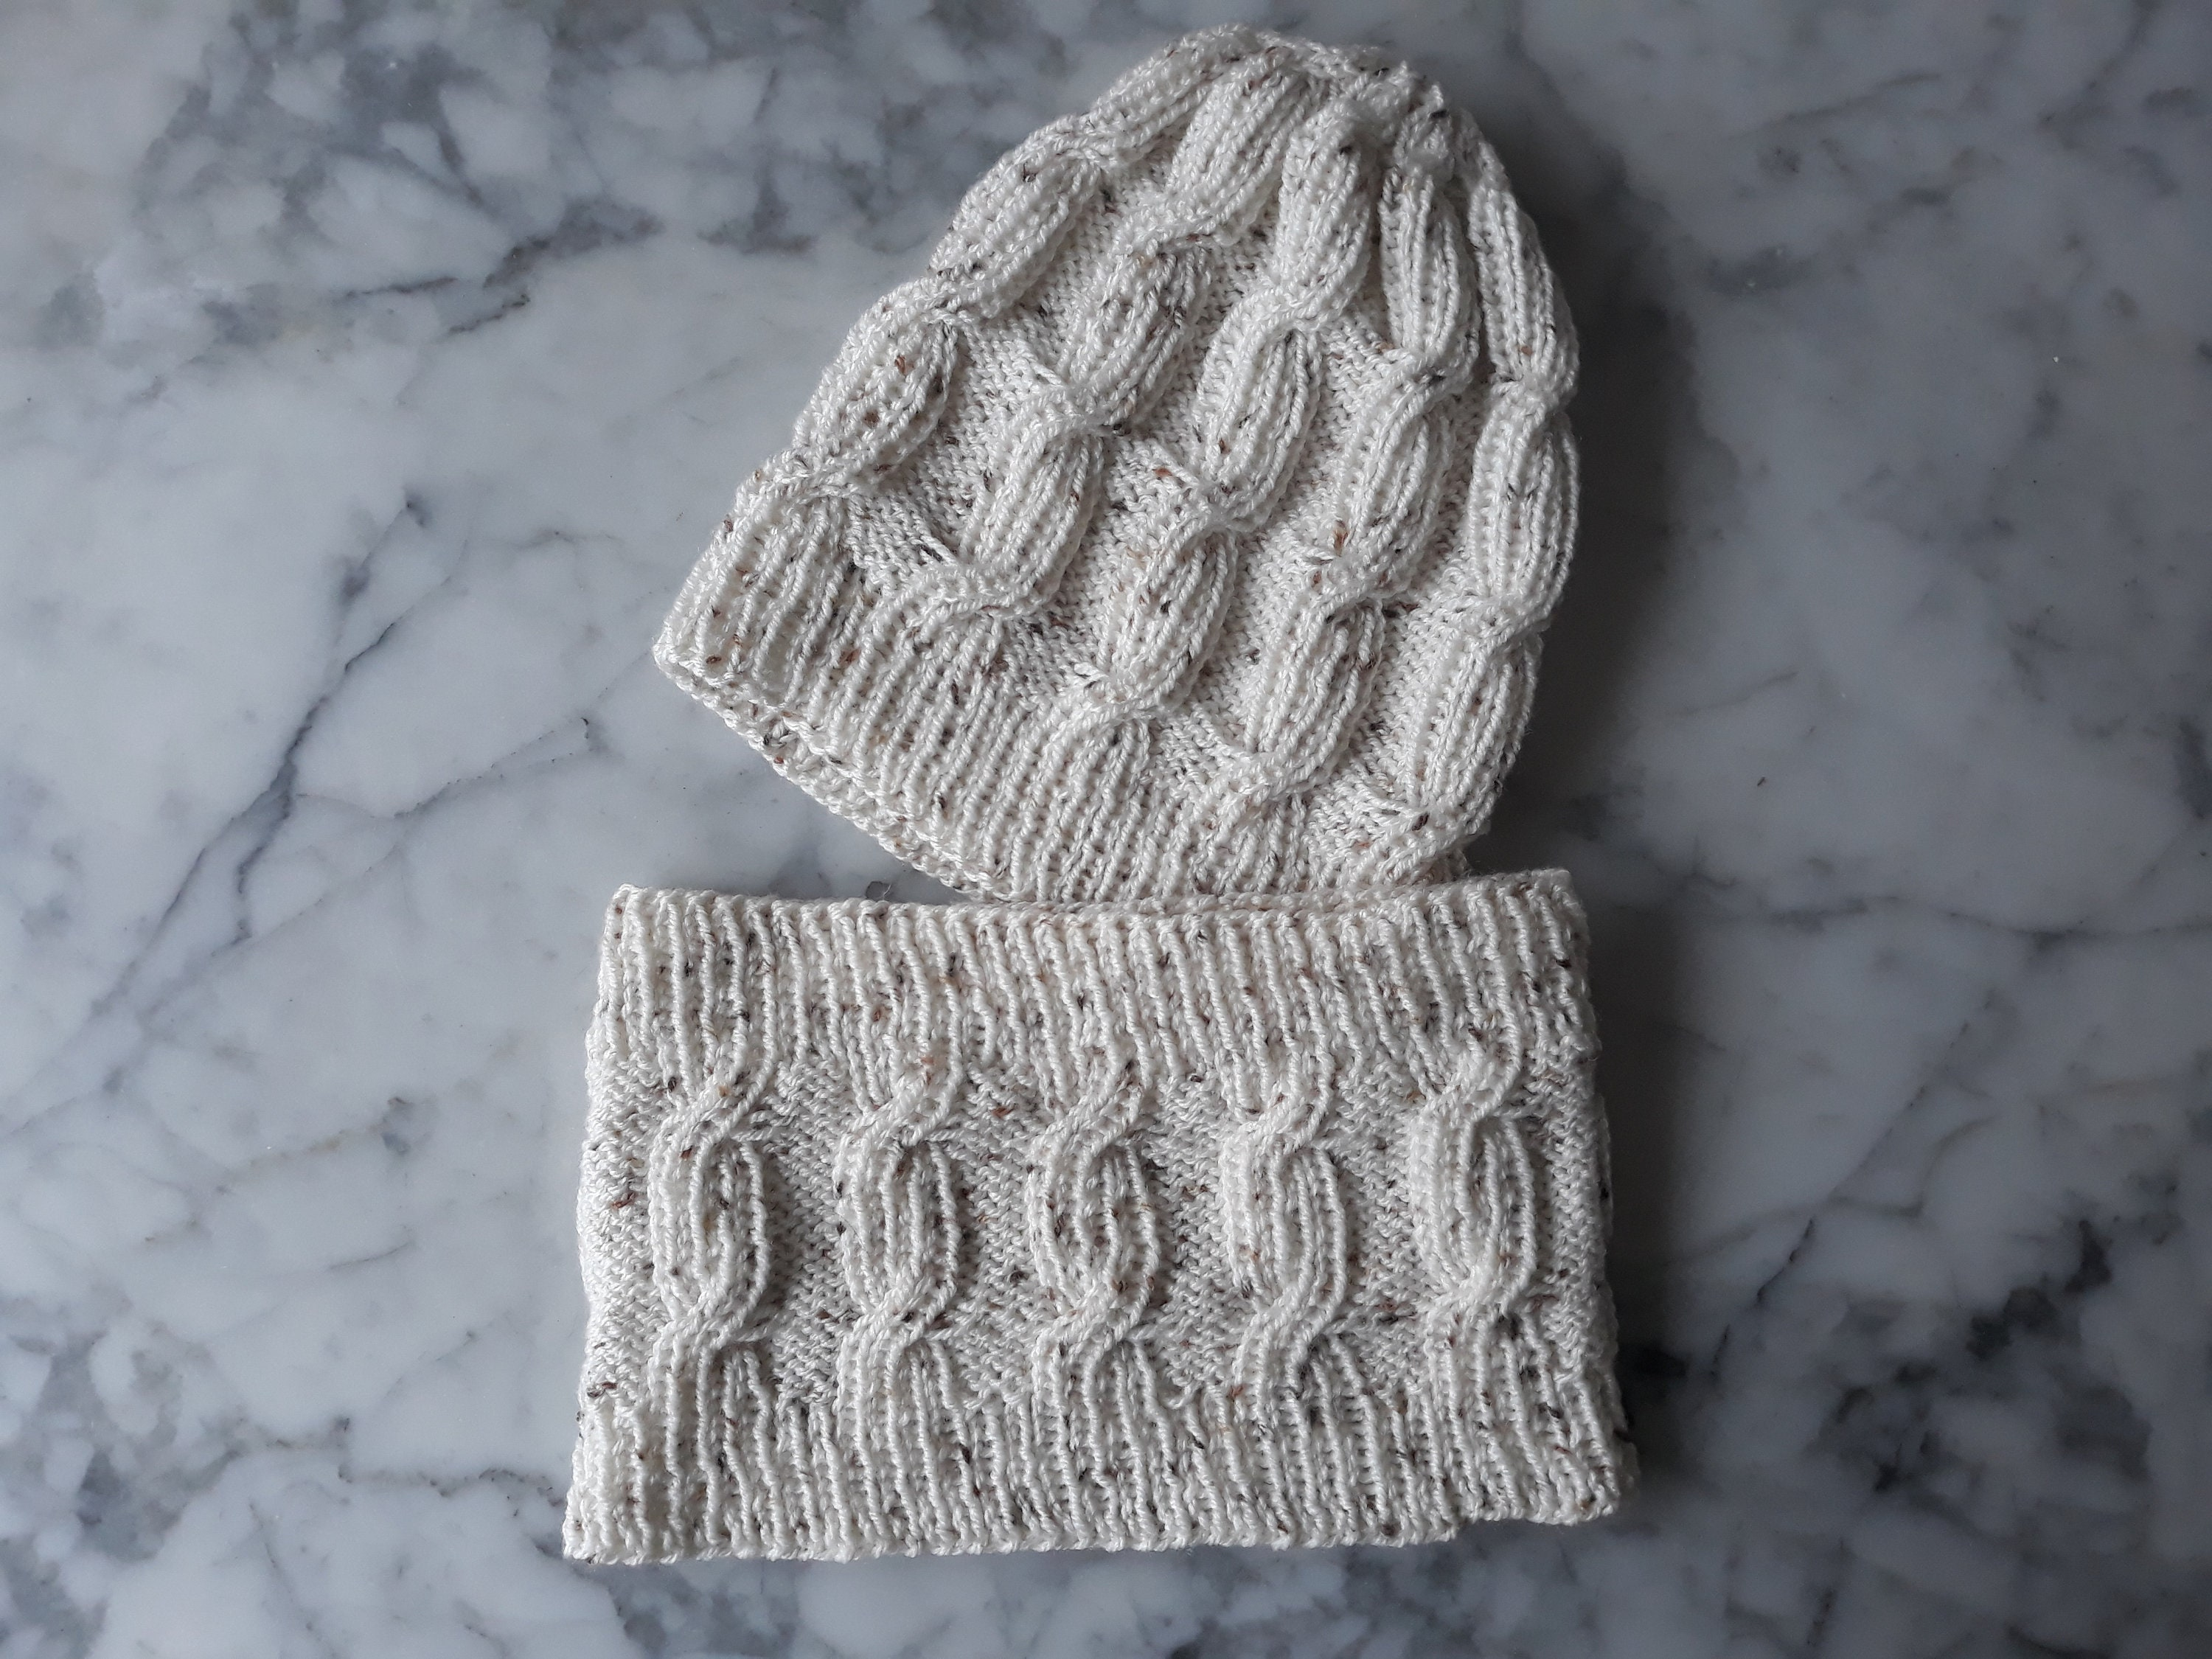 0bf9dfbc183e0 Cable knit beanie set. Speckled yarn hat. Knit hat and neckwarmer ...